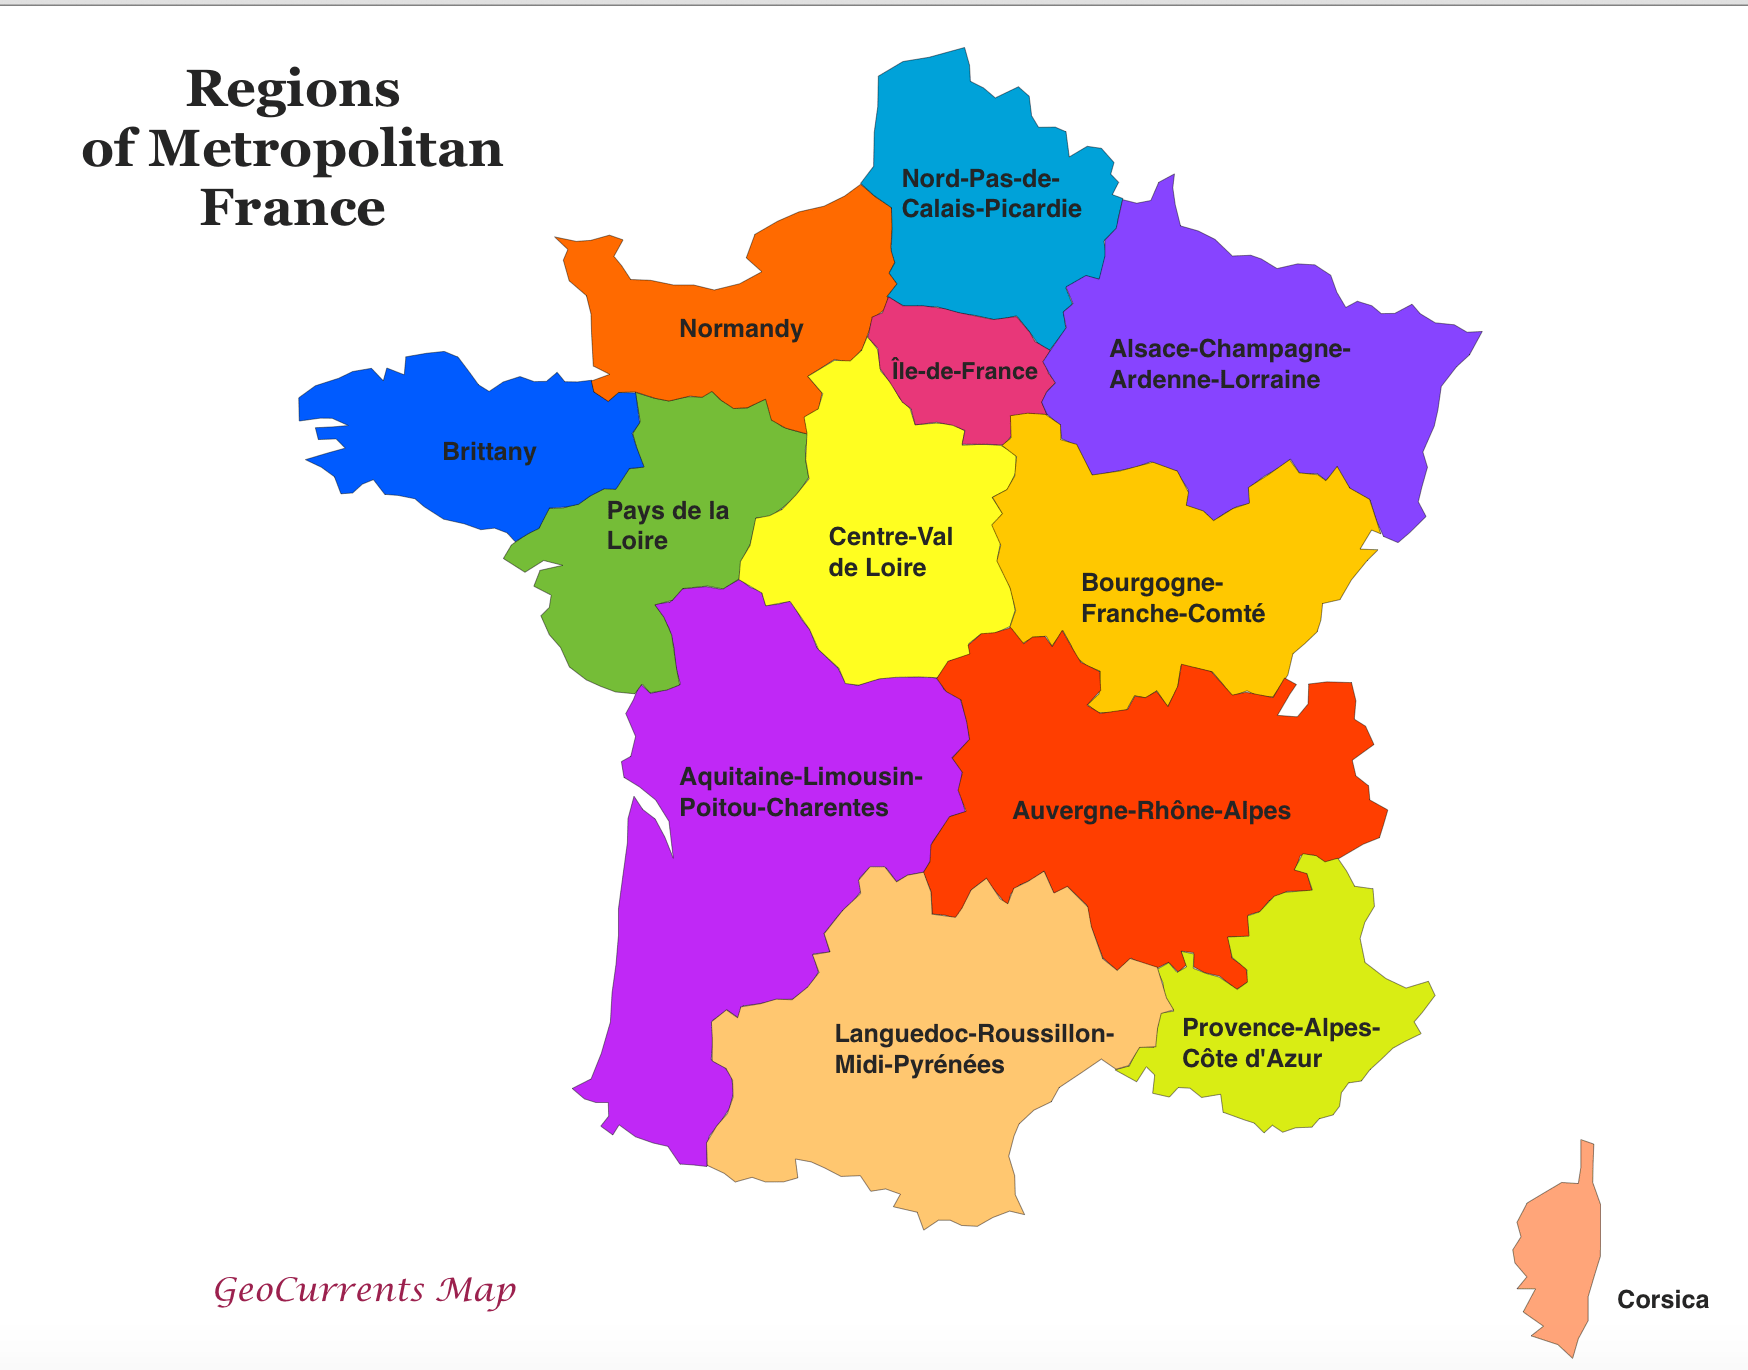 Customizable Maps Of France And The New French Regions